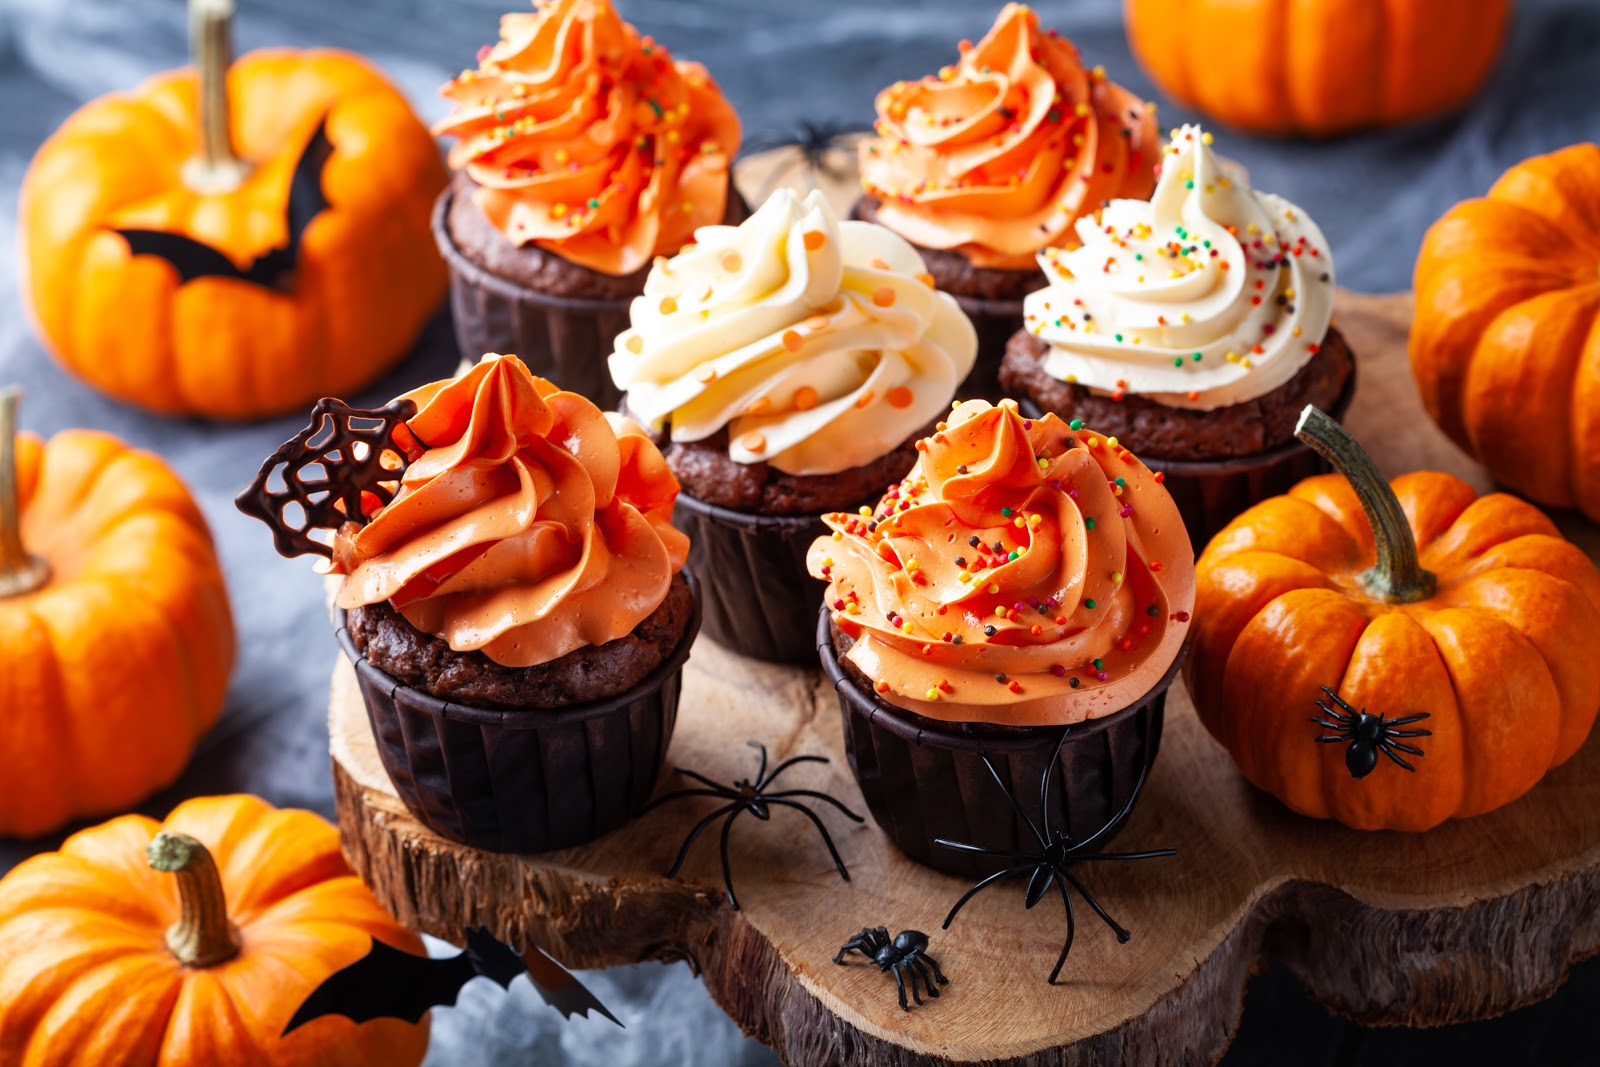 Decorative Halloween themed cupcakes are ready to be eaten by partygoers.